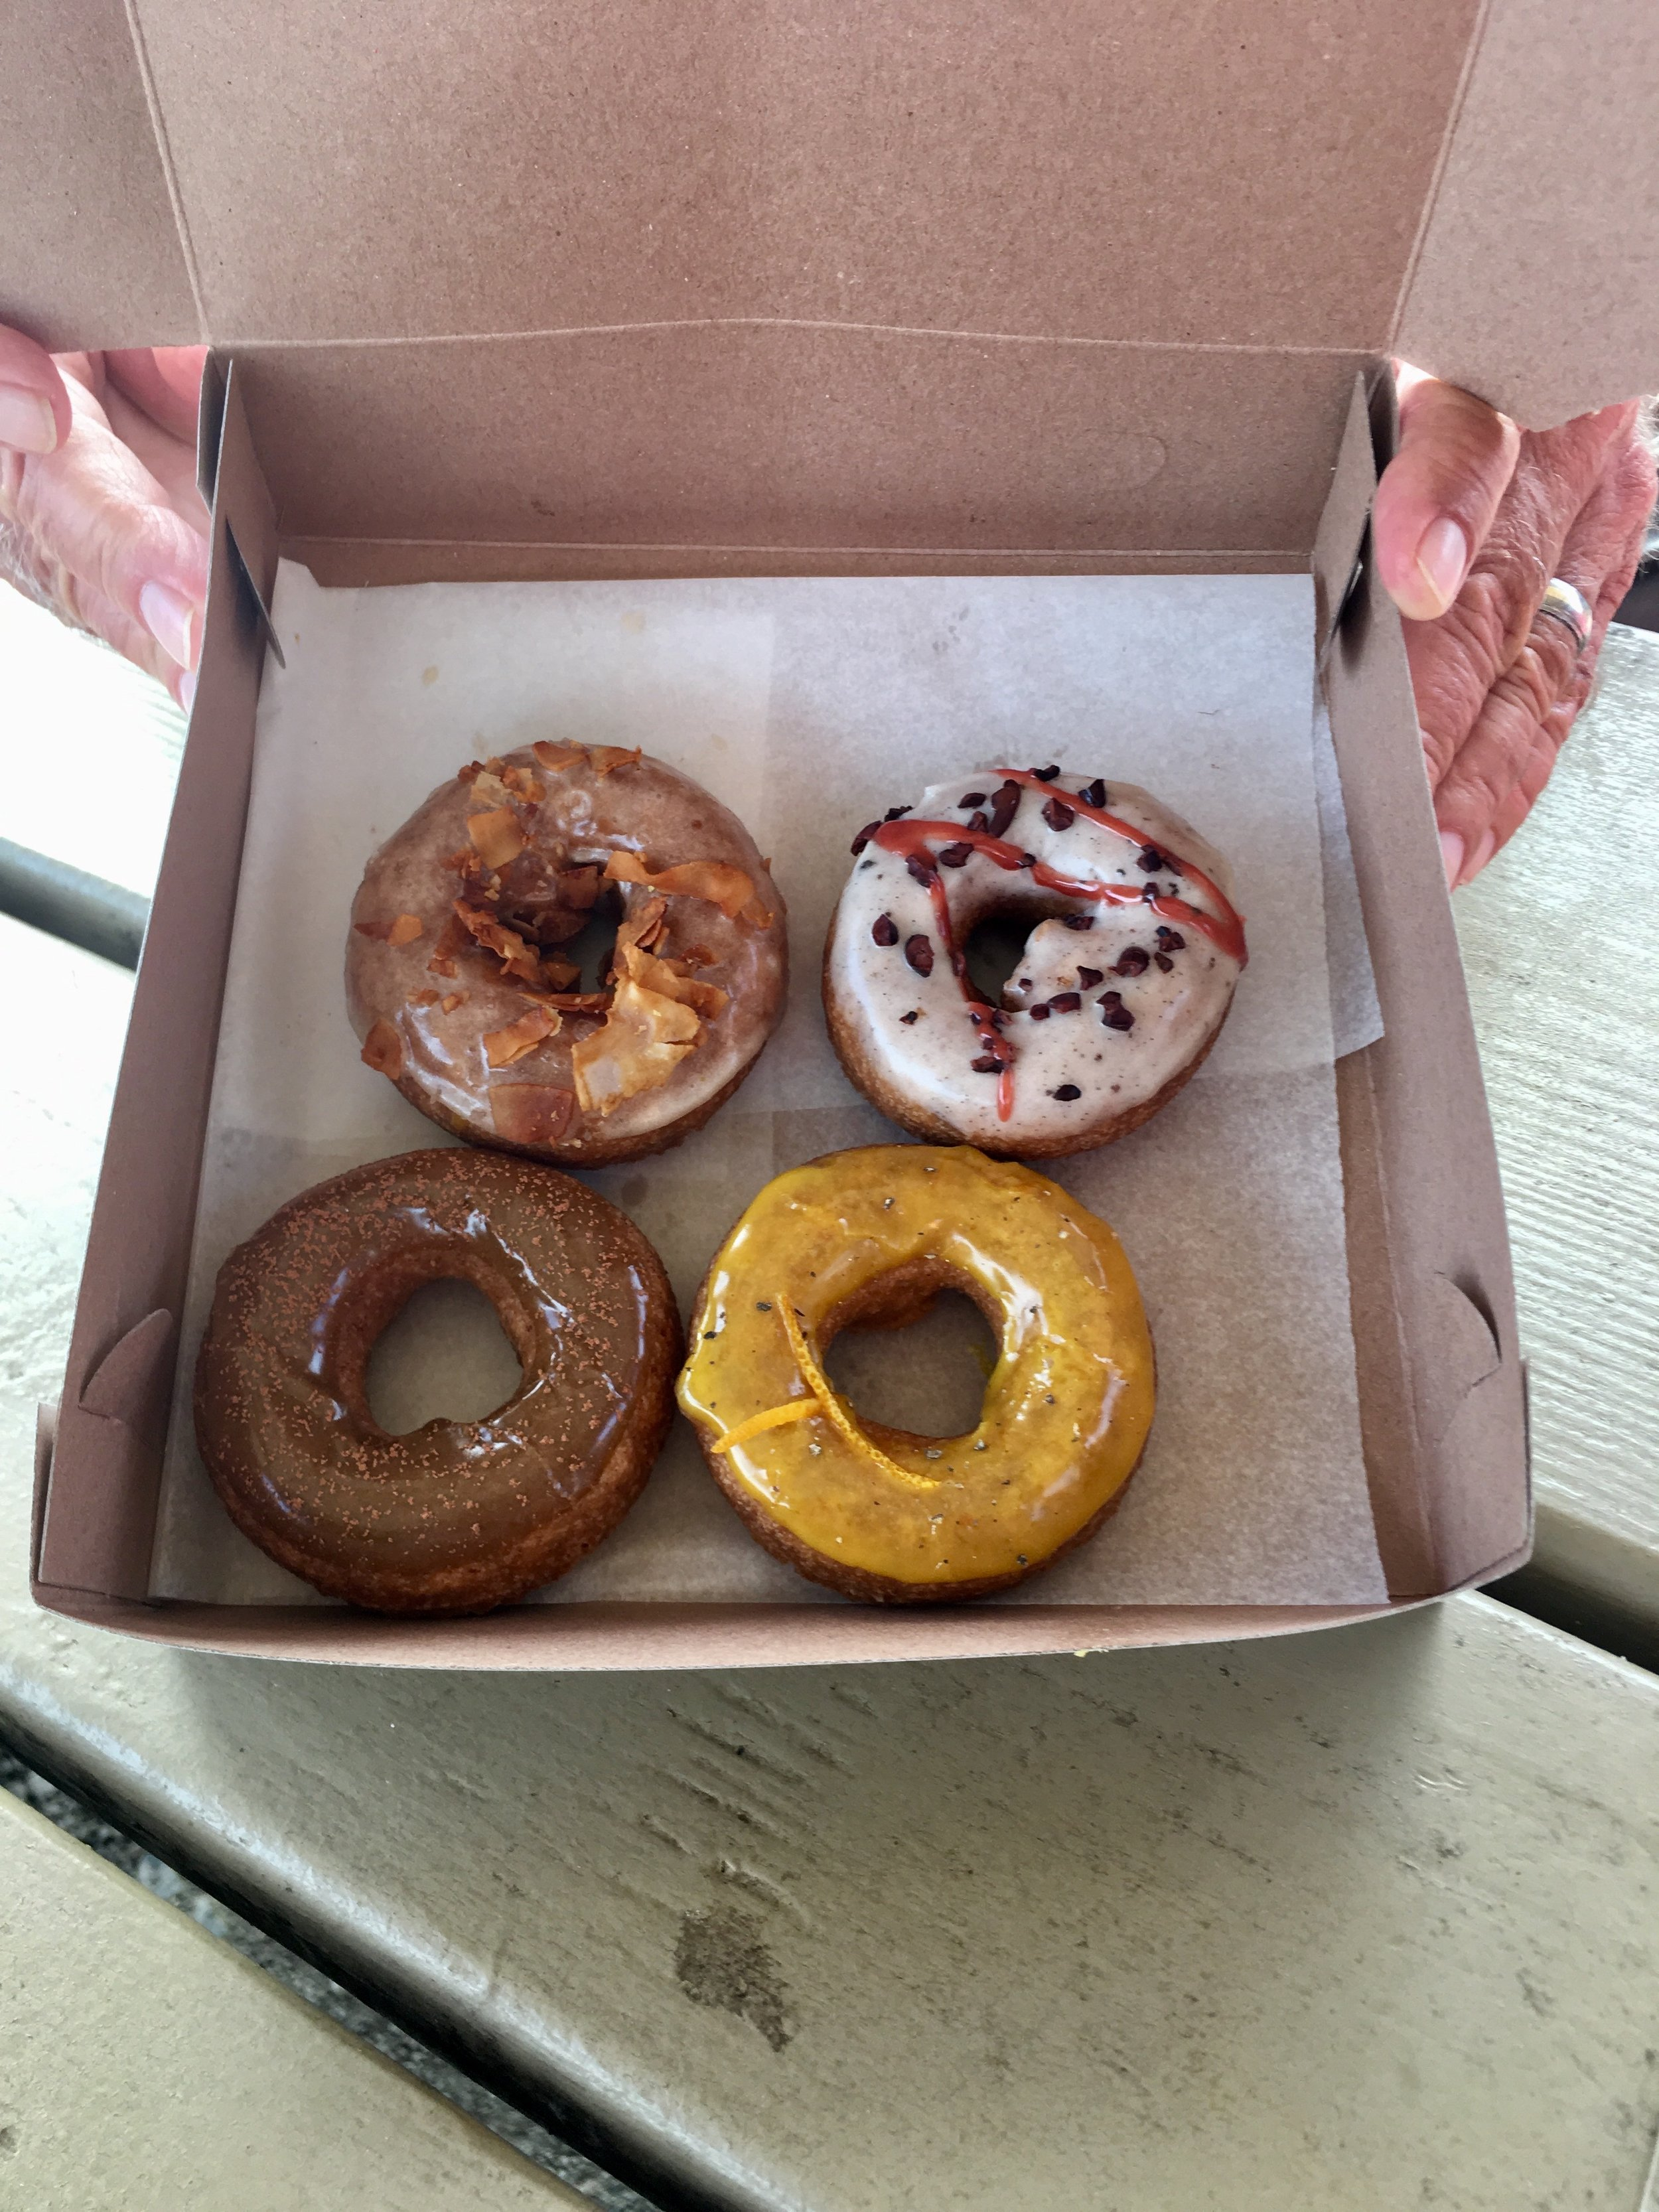 The Donuts!